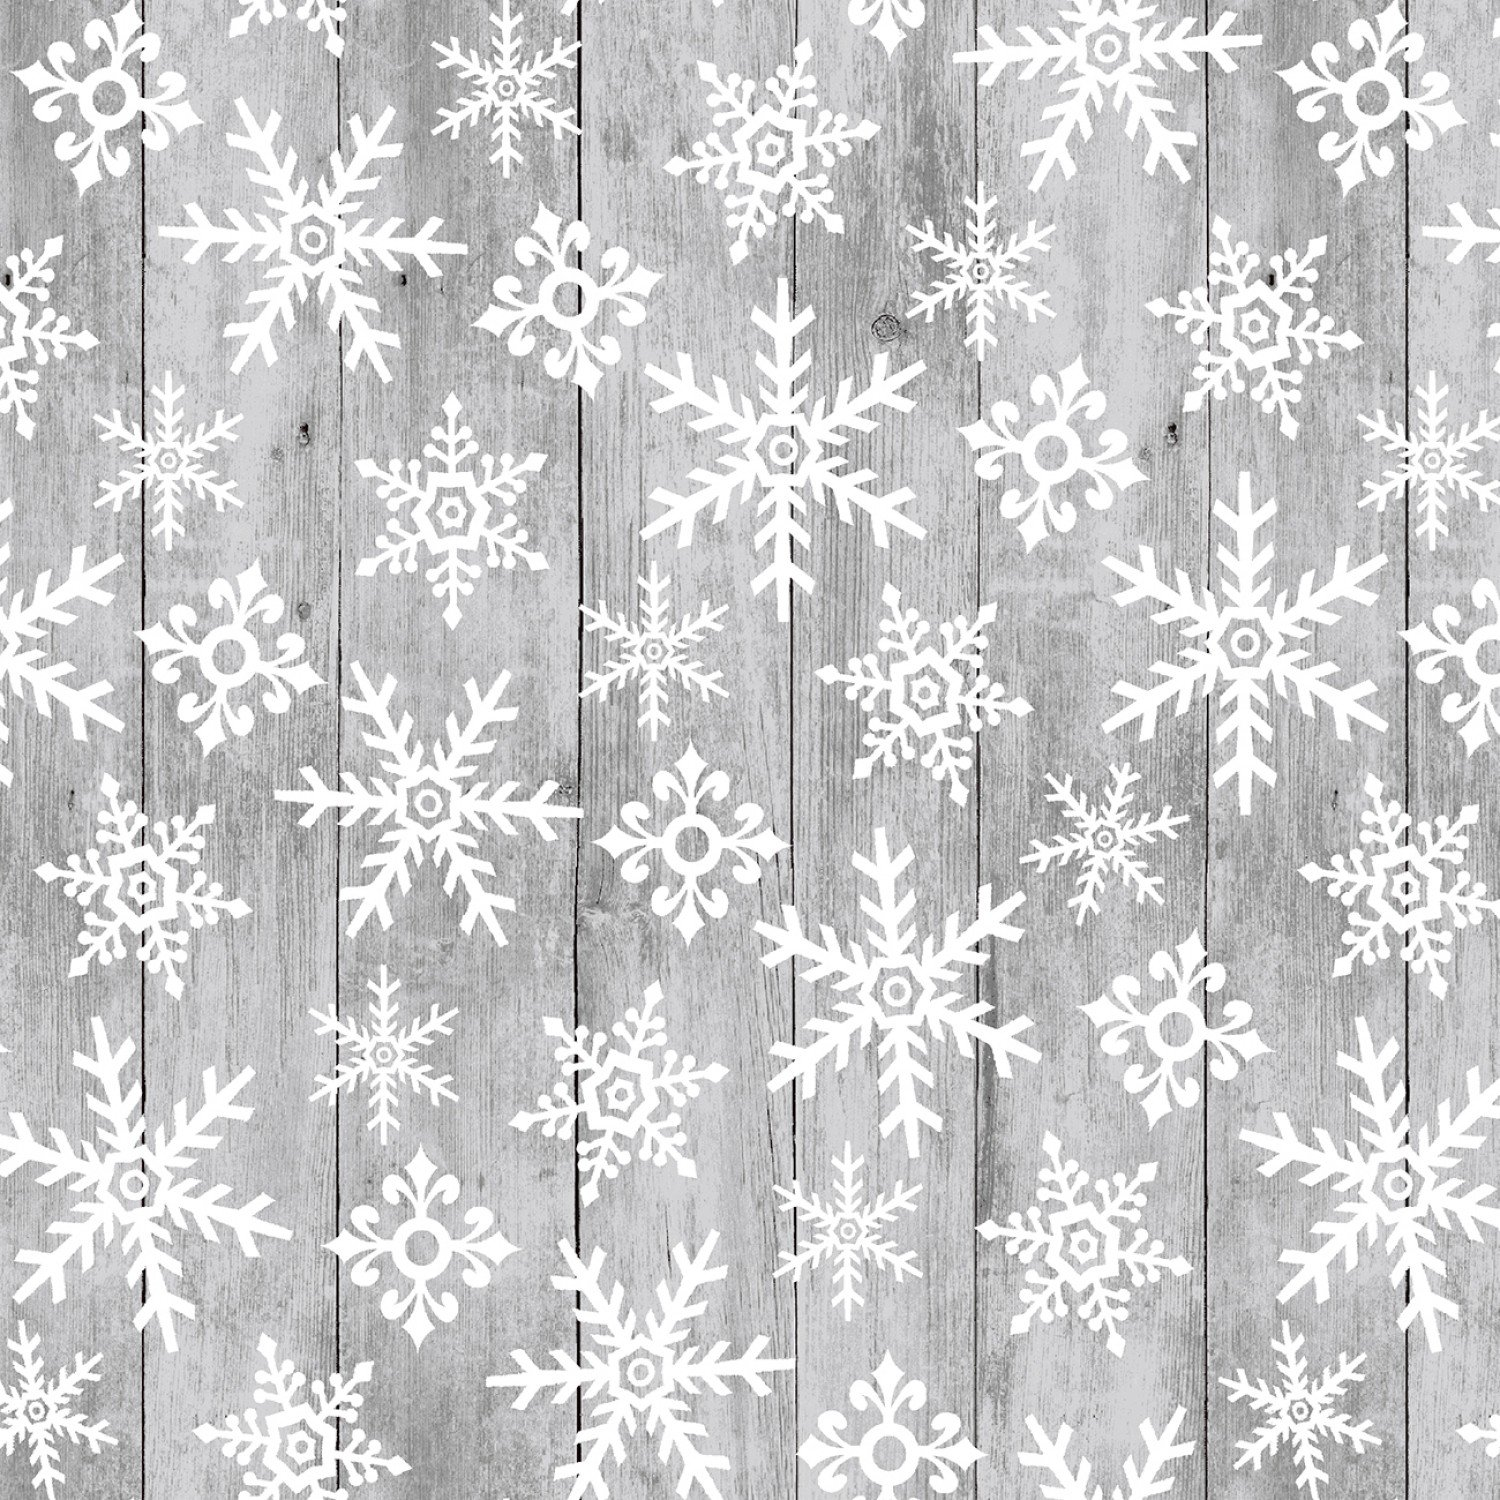 SE-Snow Place Like Home 5166-90 Gray - Tossed Snowflakes on Wood